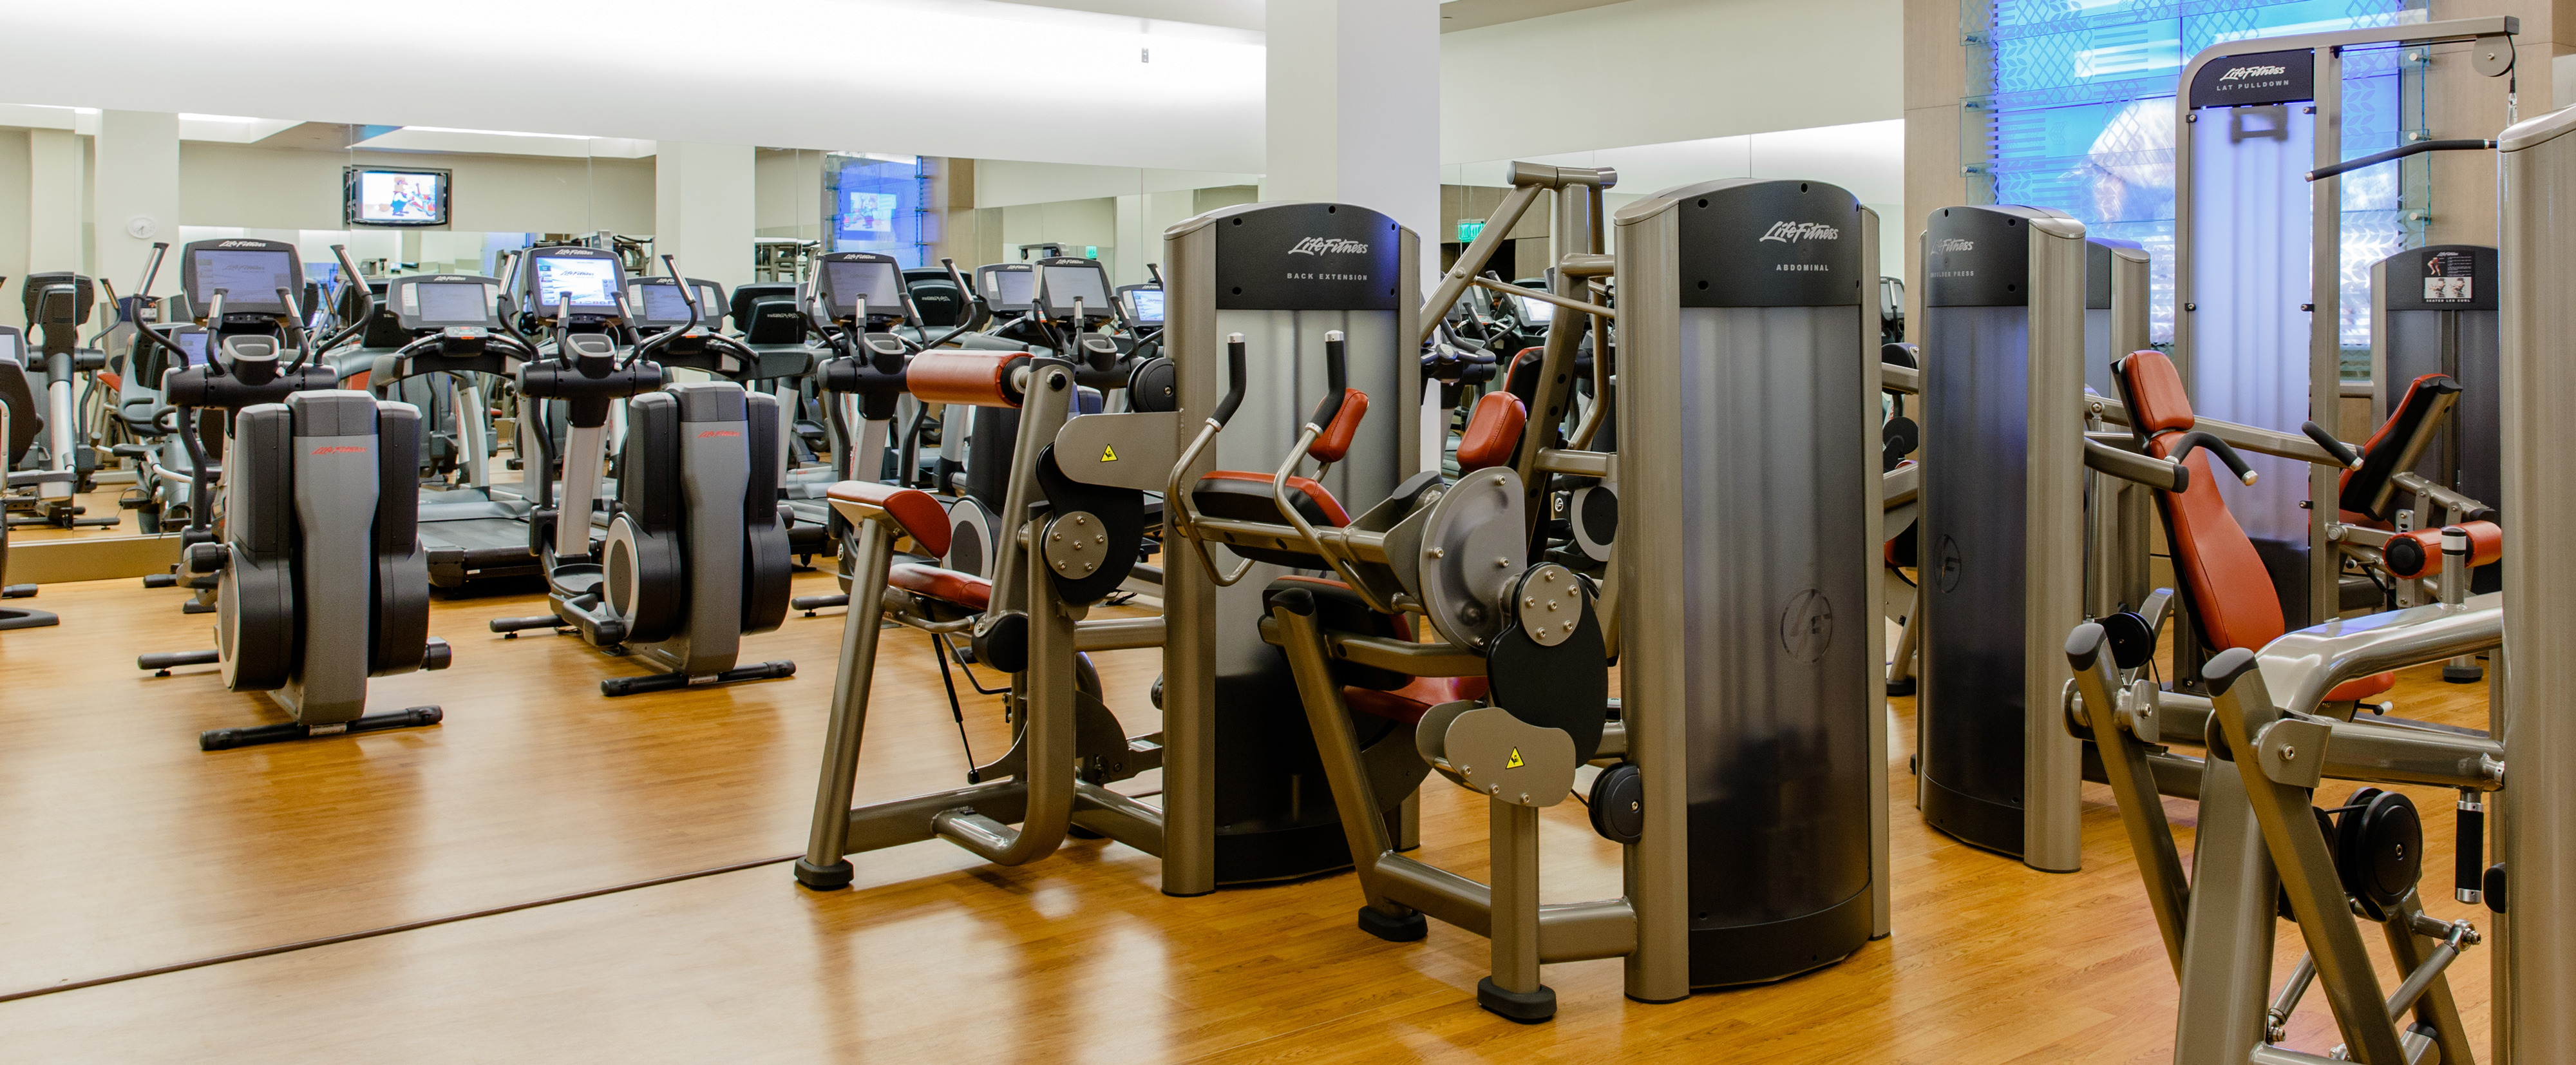 Life Fitness Elliptical Machines Along A Mirrored Wall Inside Mikimiki Center